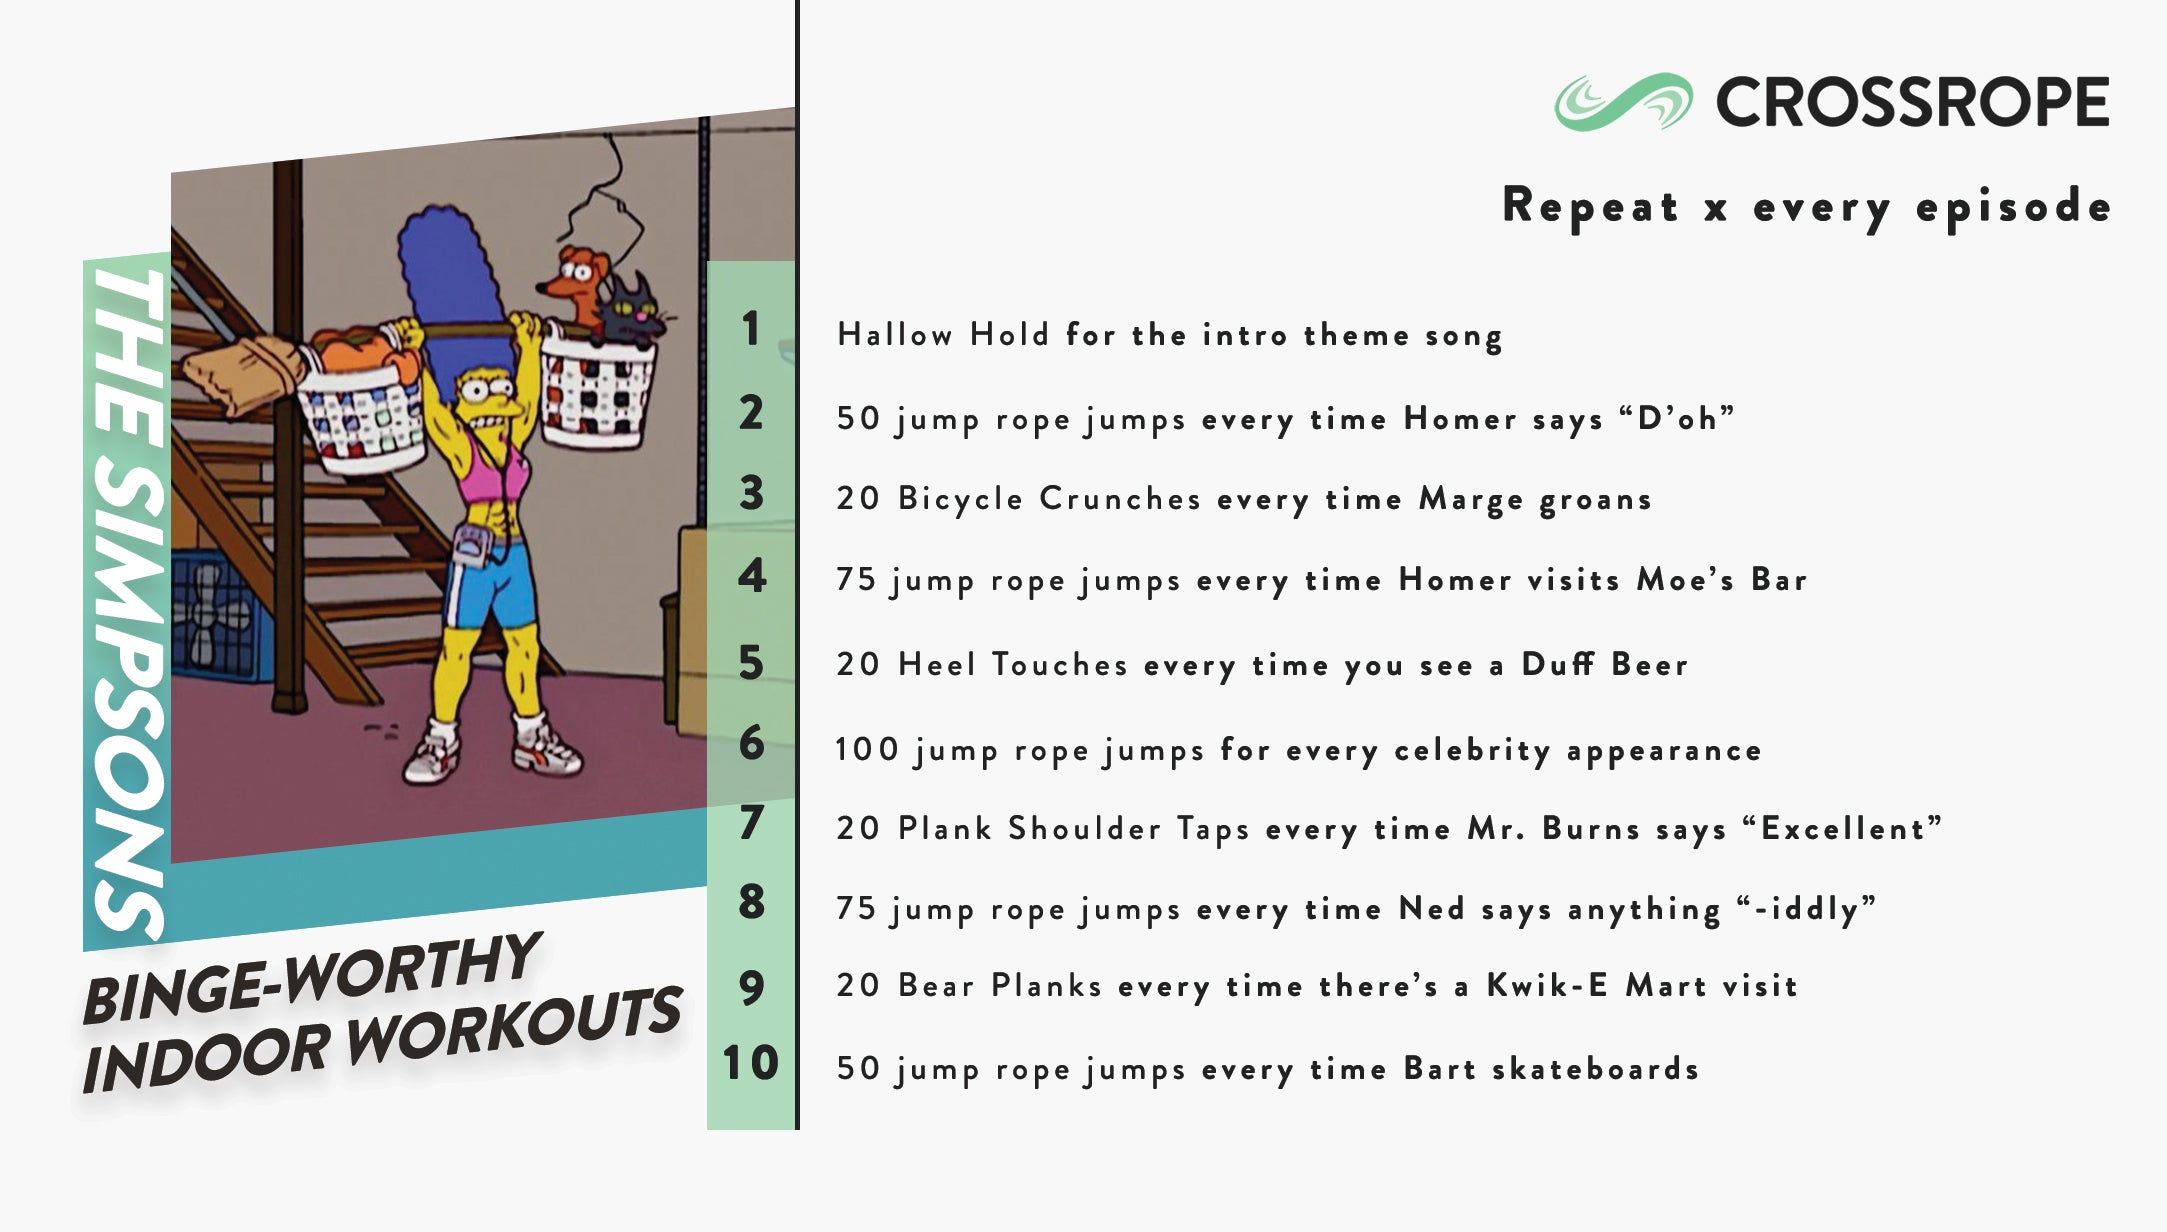 infographic image describing fun indoor workouts you can do while watching the TV show The Simpsons